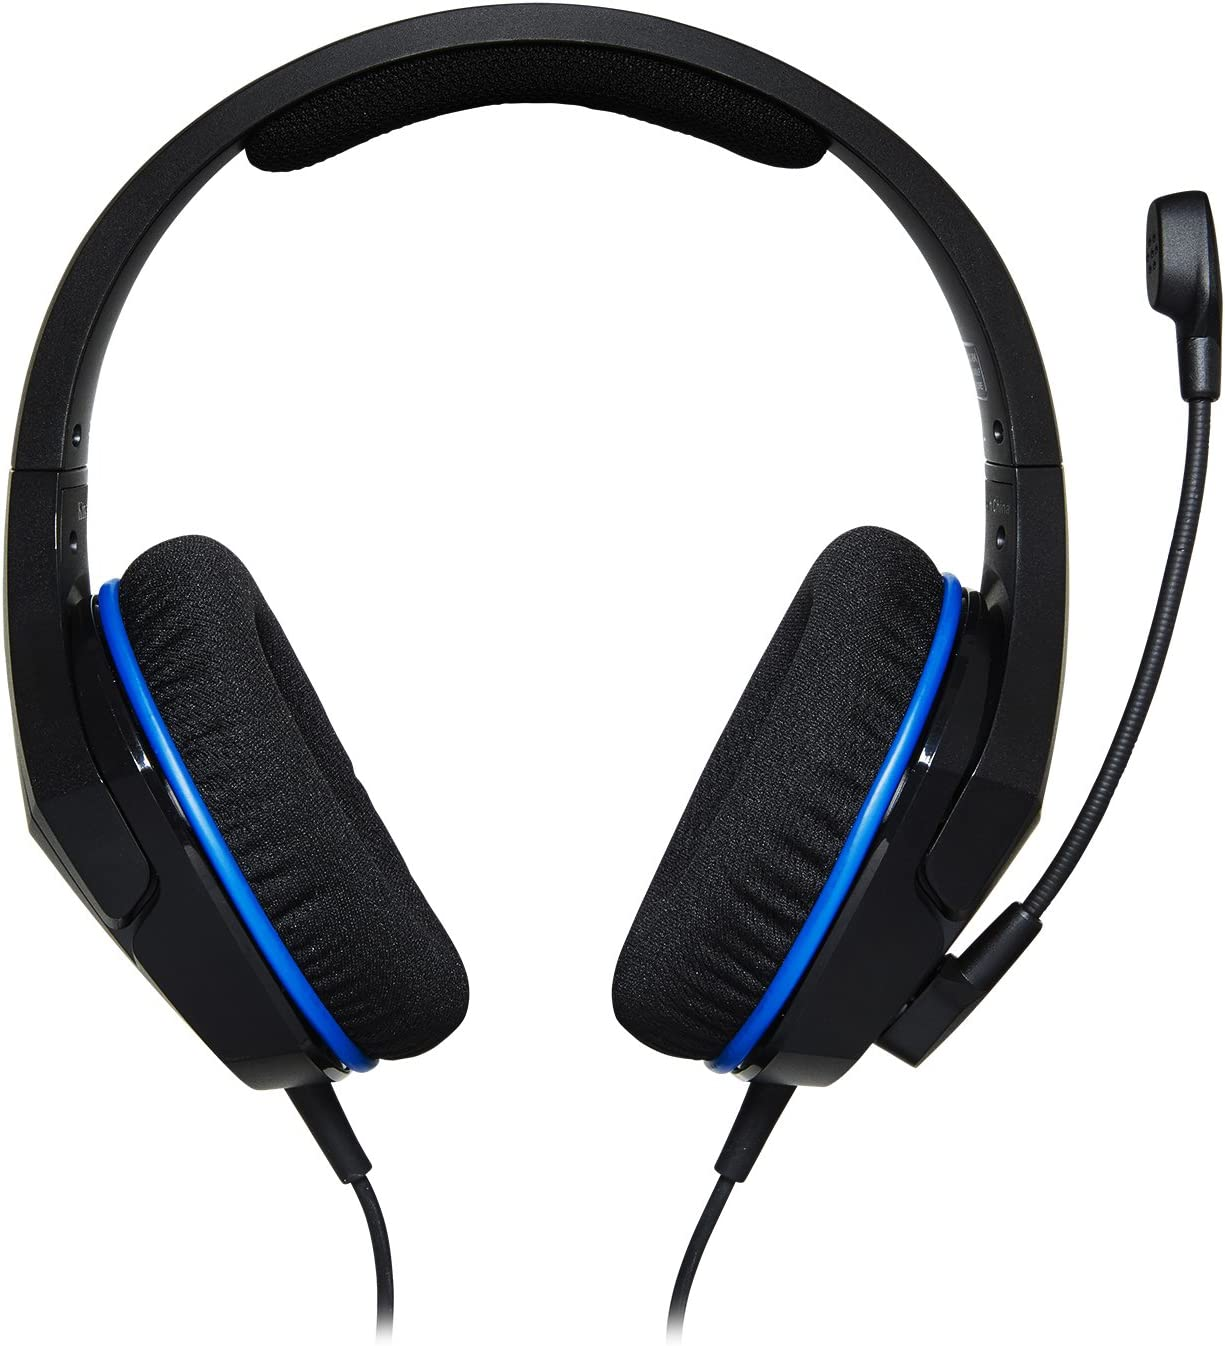 HyperX Cloud Stinger Core - Gaming Headset for PlayStation 4 and PlayStation 5, Over-Ear Wired Headset with Mic, Passive Noise Cancelling, Immersive In-Game Audio, In-Line Audio Control, Black